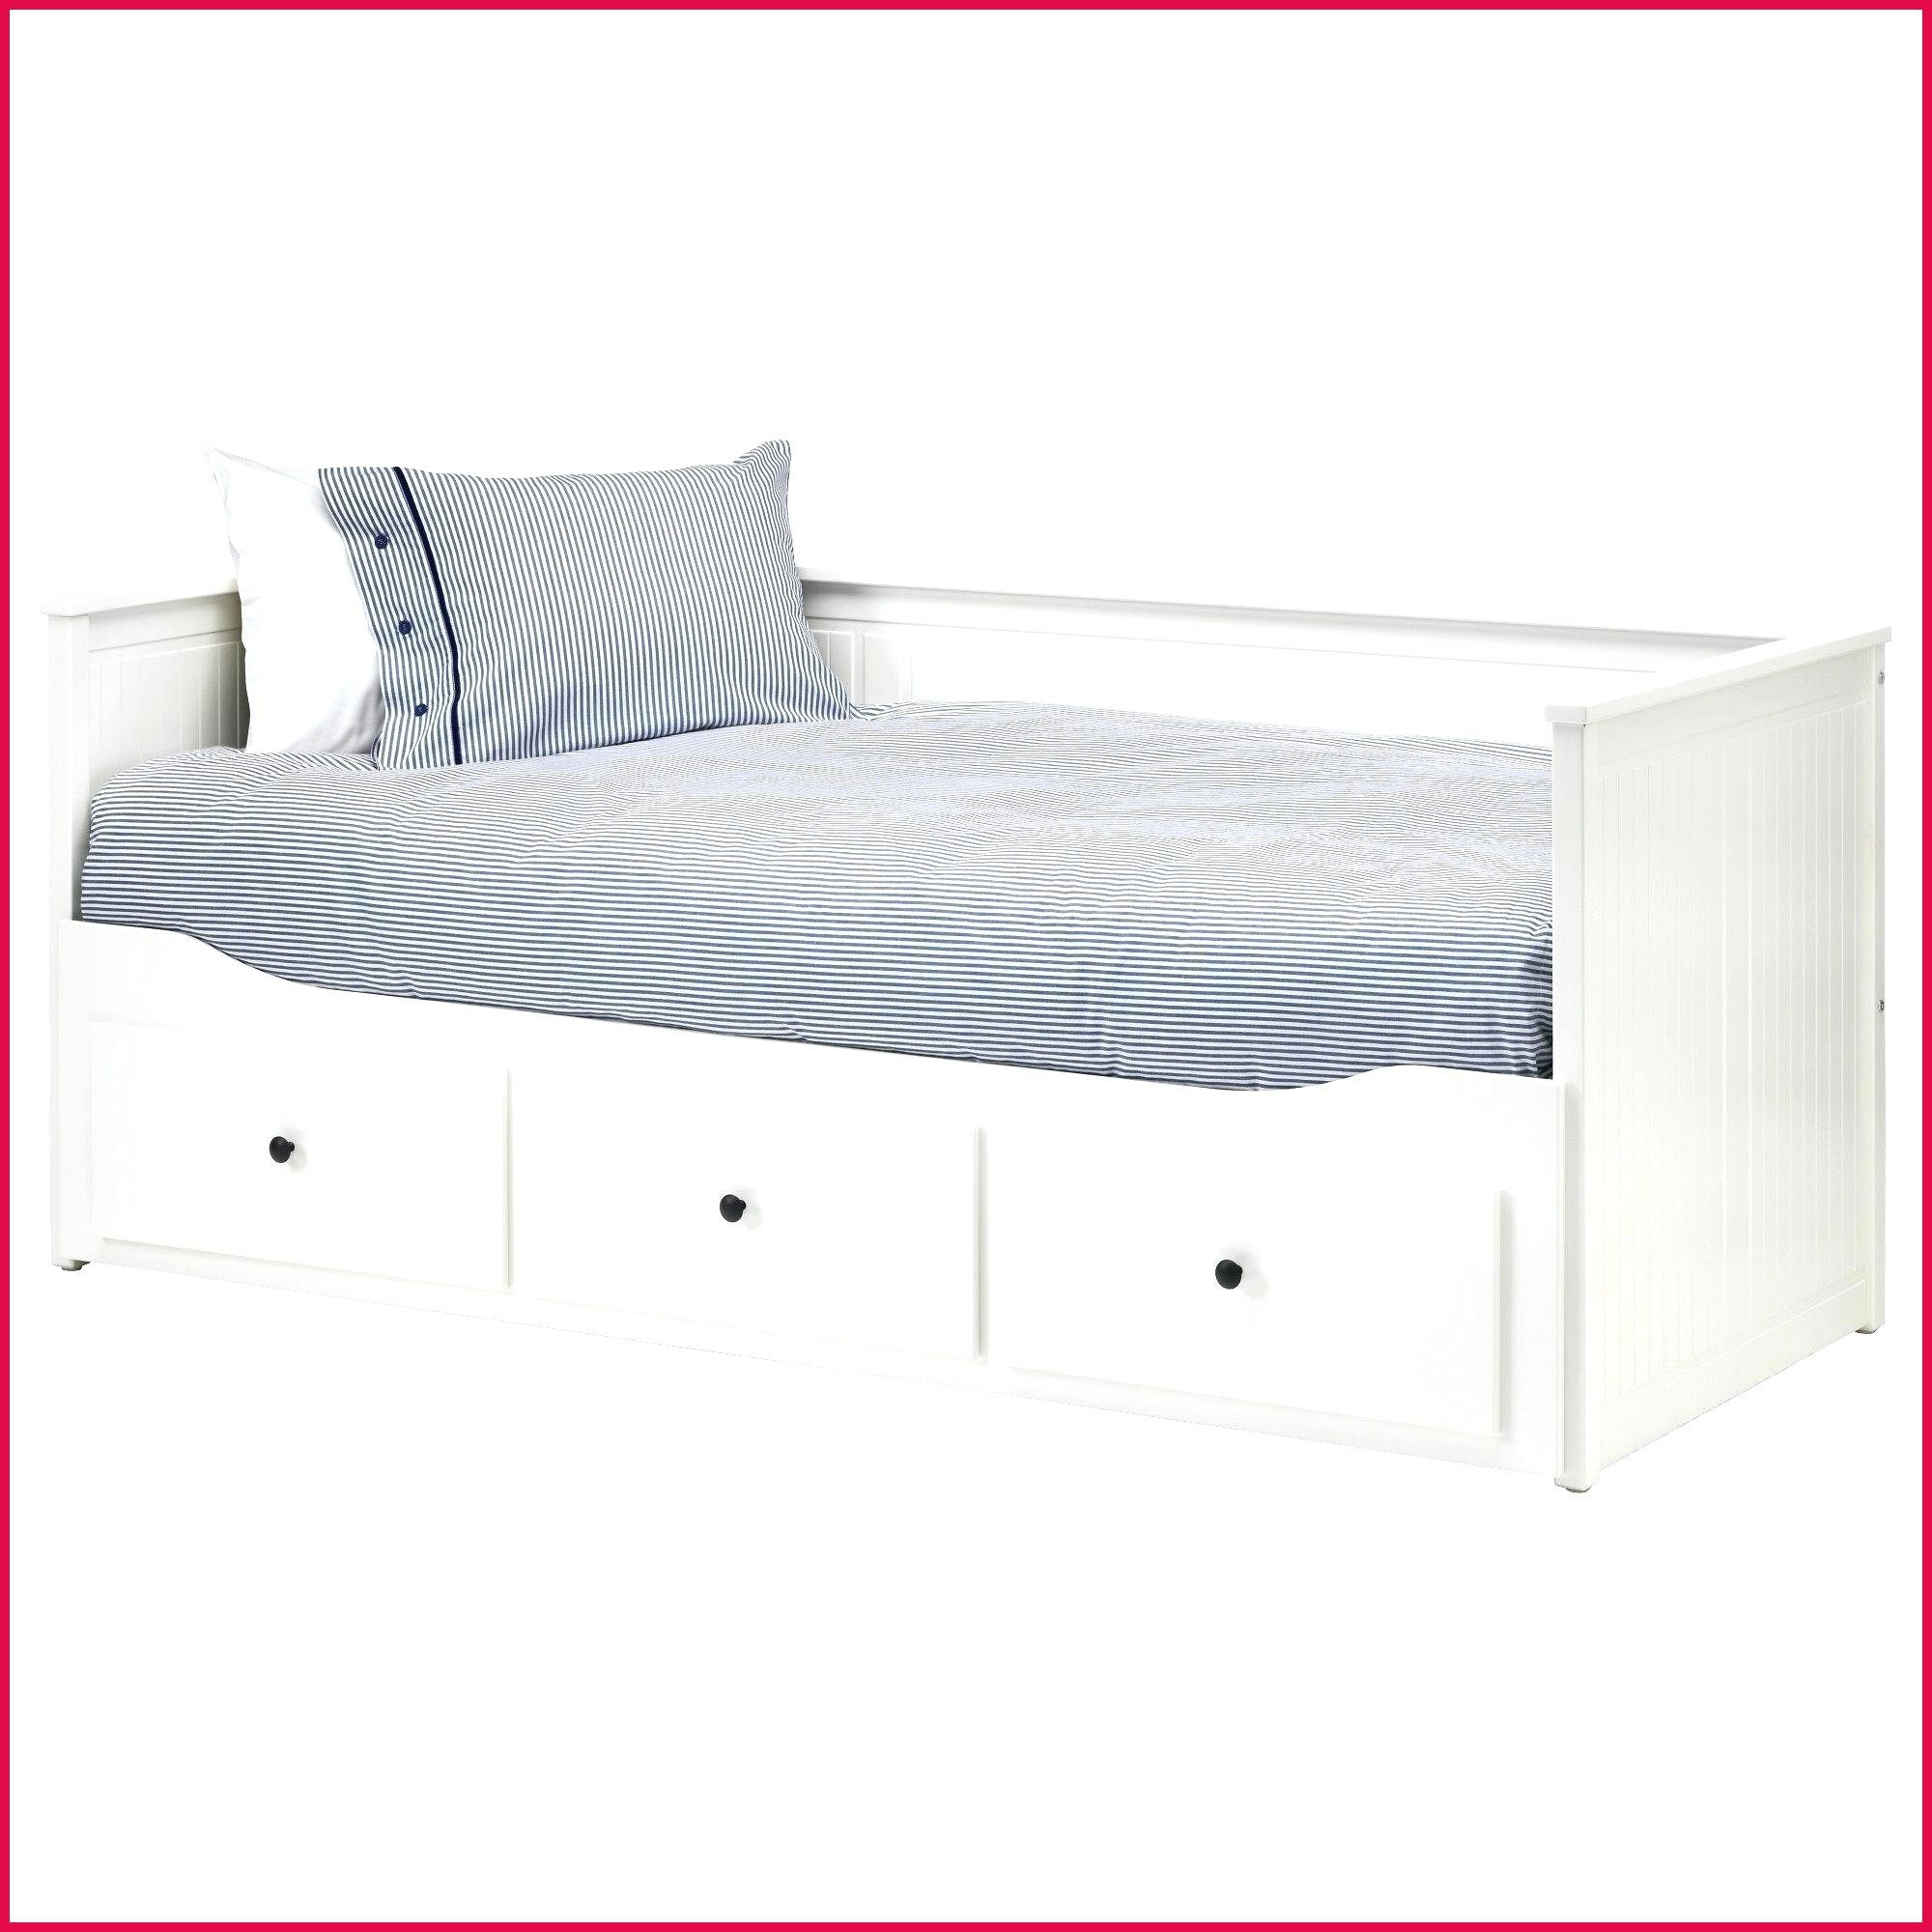 Lit Coffre 160x200 Ikea Inspirant Banc De Lit but Beautiful but Lit 27 sommier Electrique Ikea Coffre